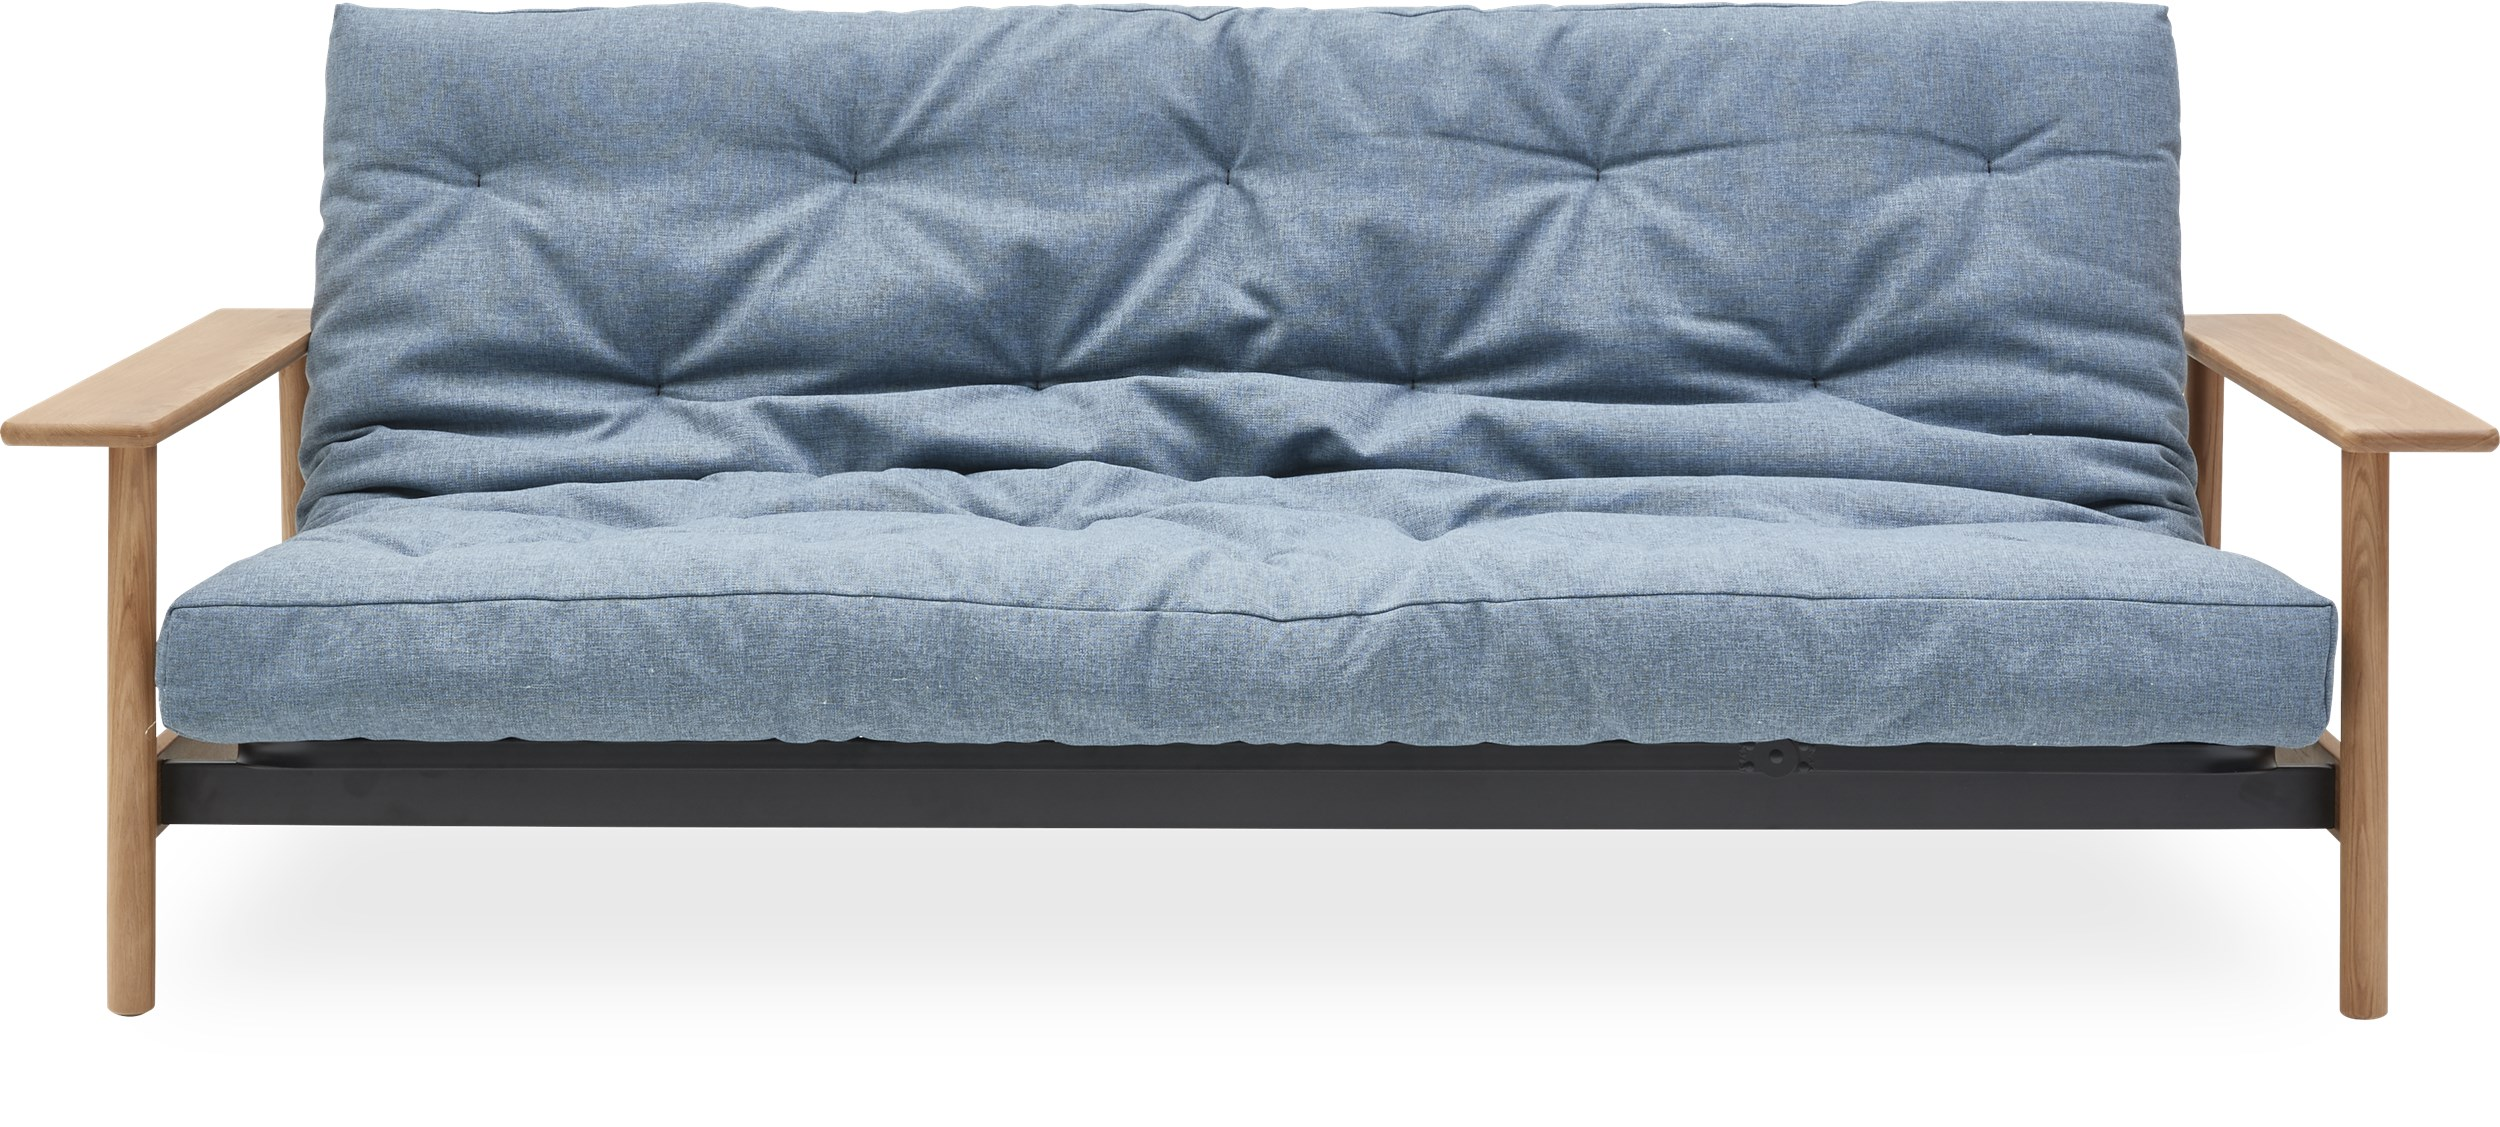 Innovation Living - Balder Soft Spring Nordic Sovesofa - Sovesofa